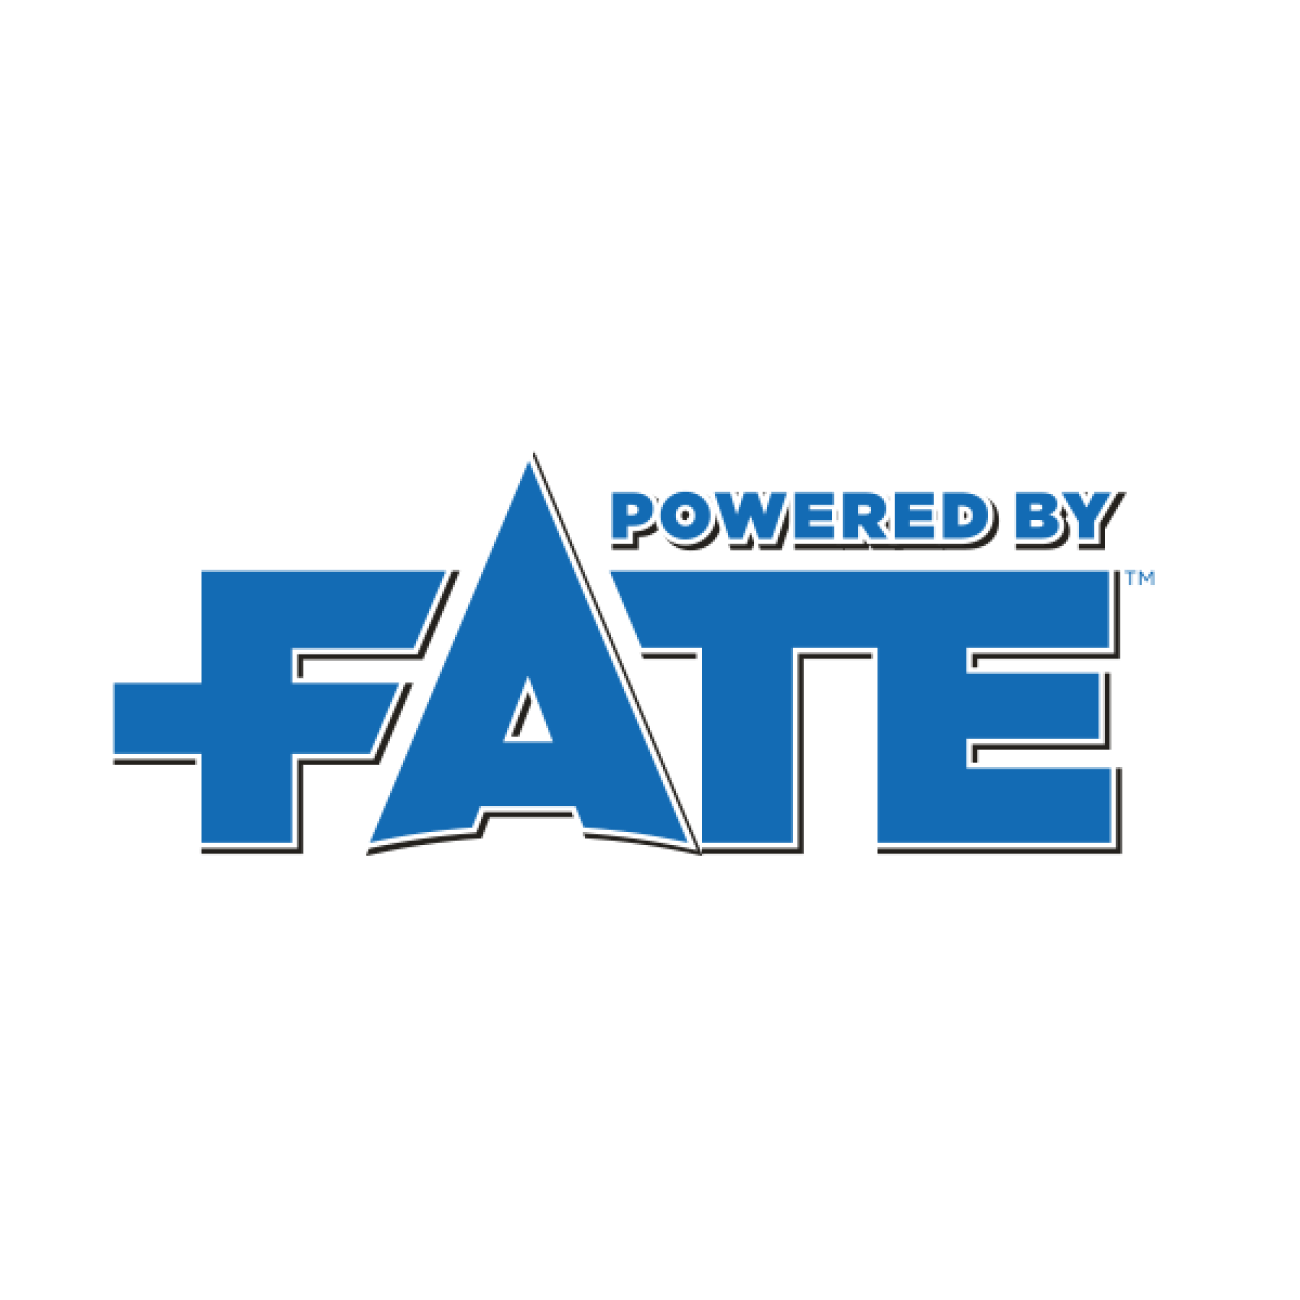 Ep. 1: Why Fate?